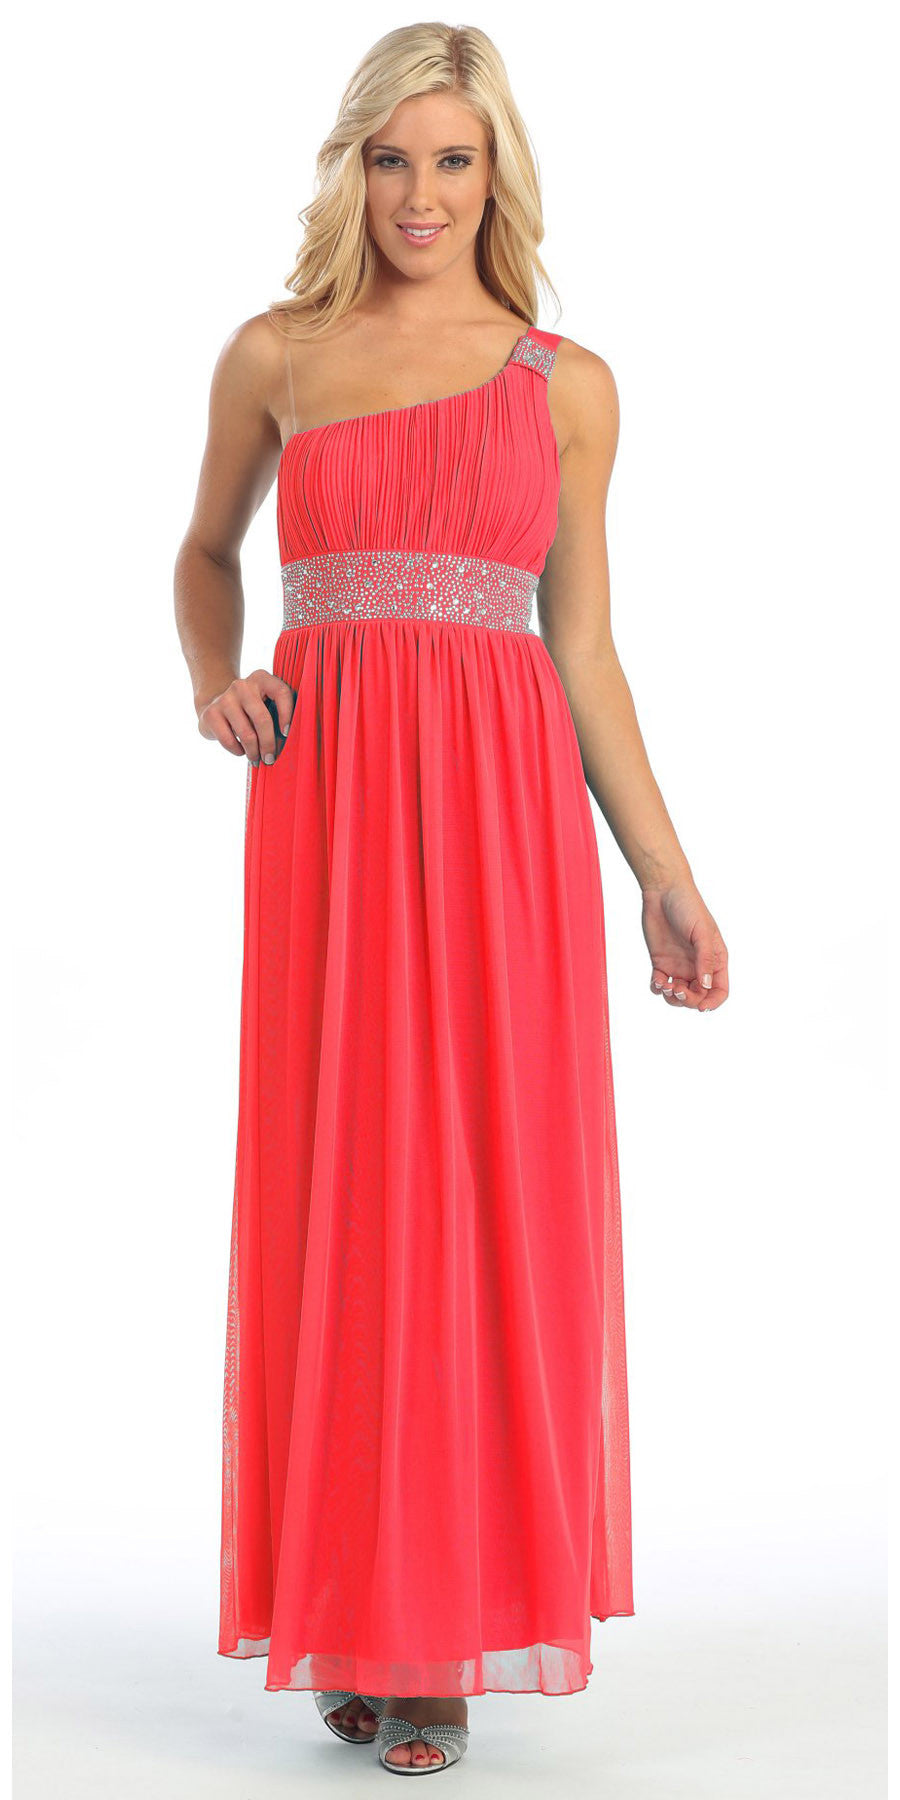 Ankle Length Coral Maternity Dress One Shoulder Chiffon Empire